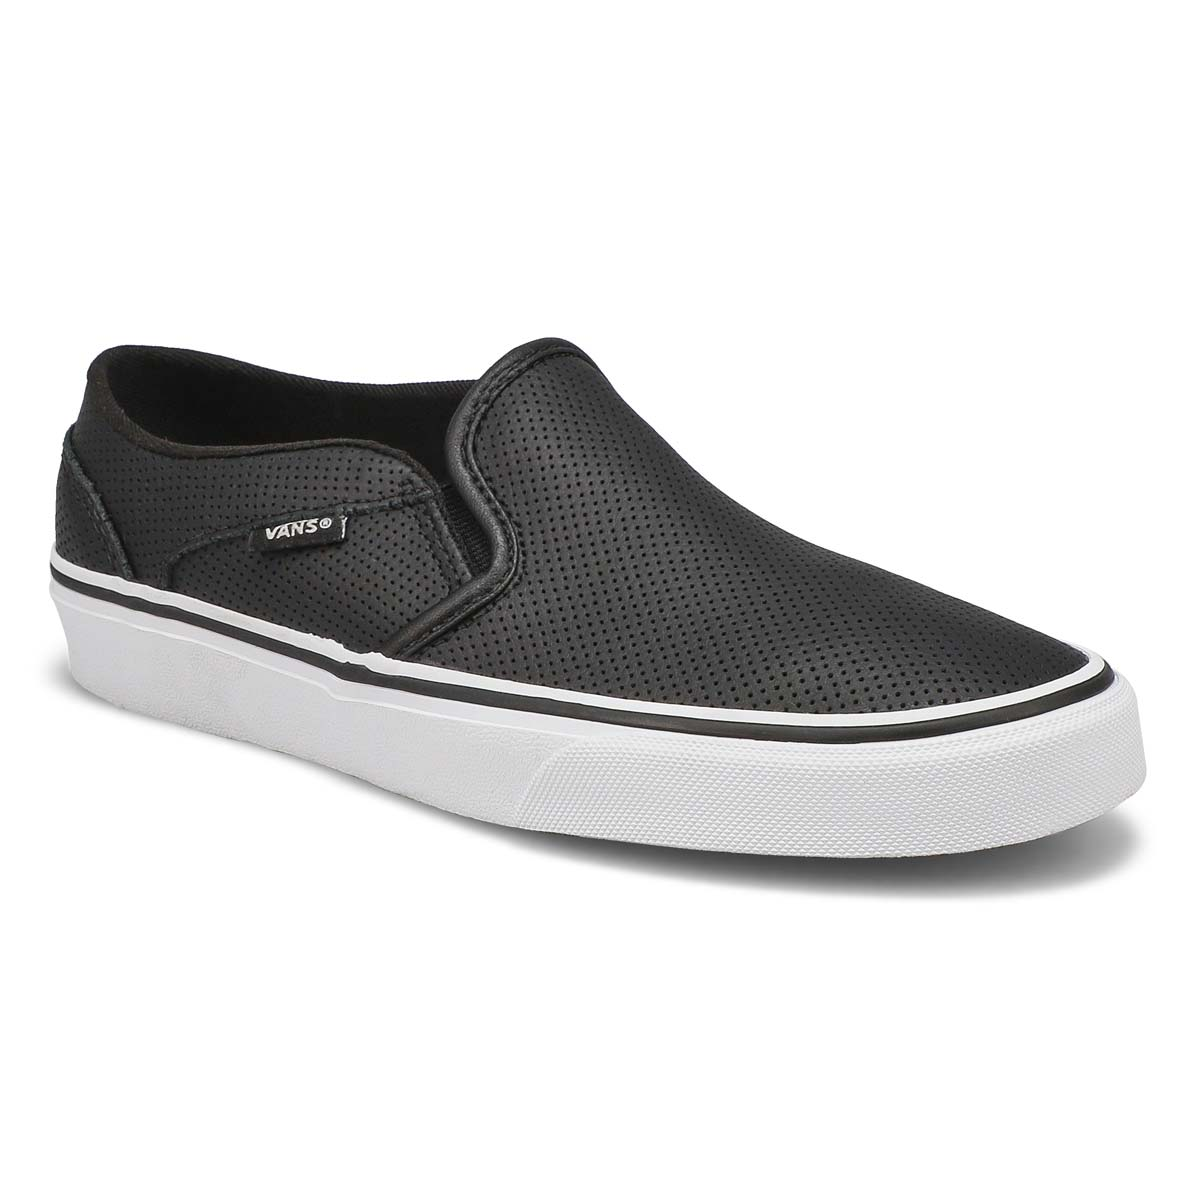 Lds Asher black leather slip on sneaker